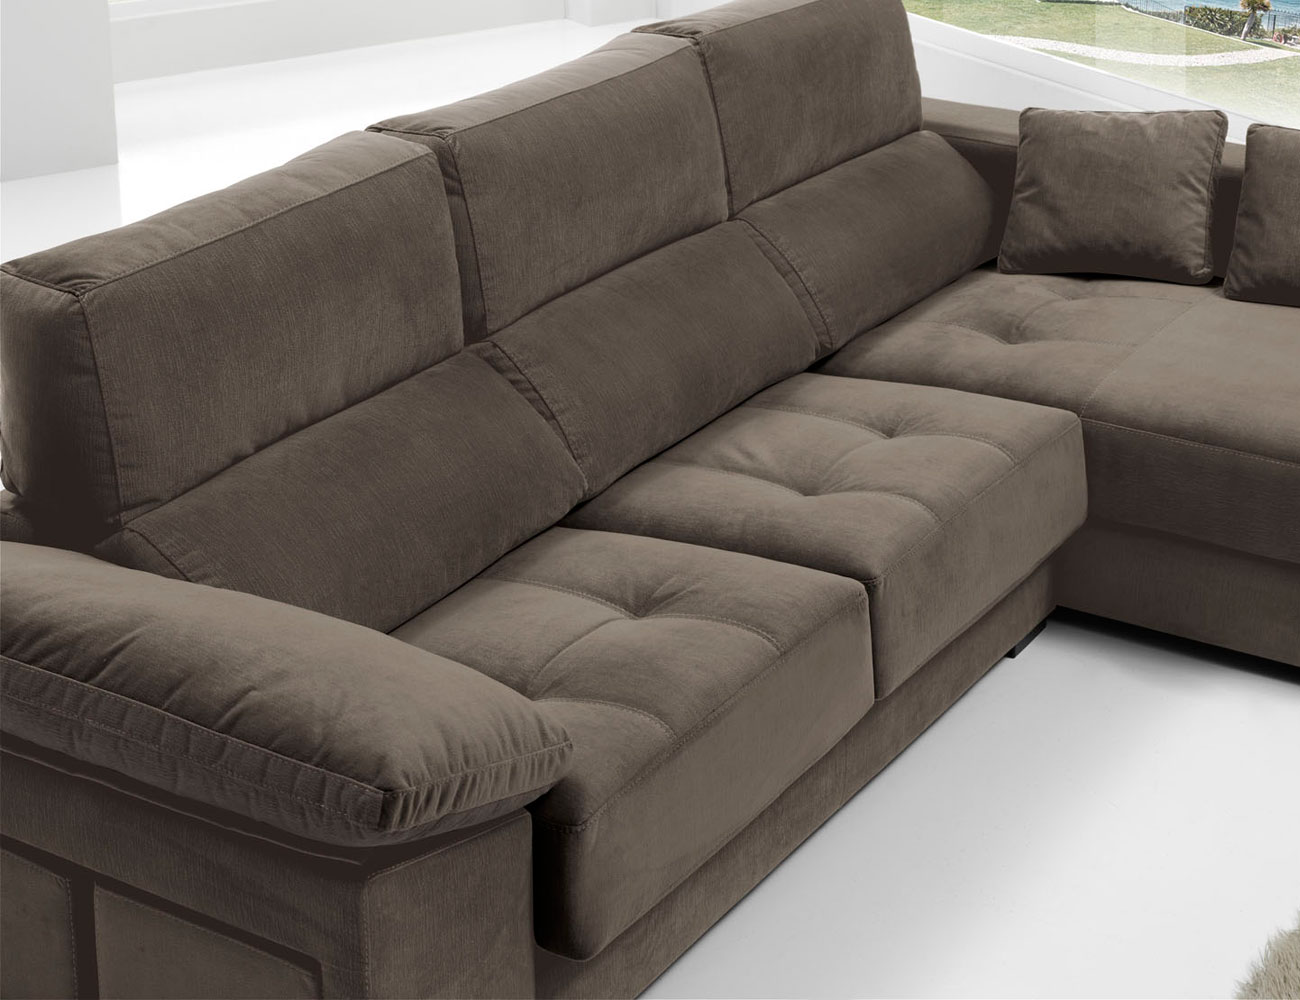 Sofa chaiselongue anti manchas bering pouf 245